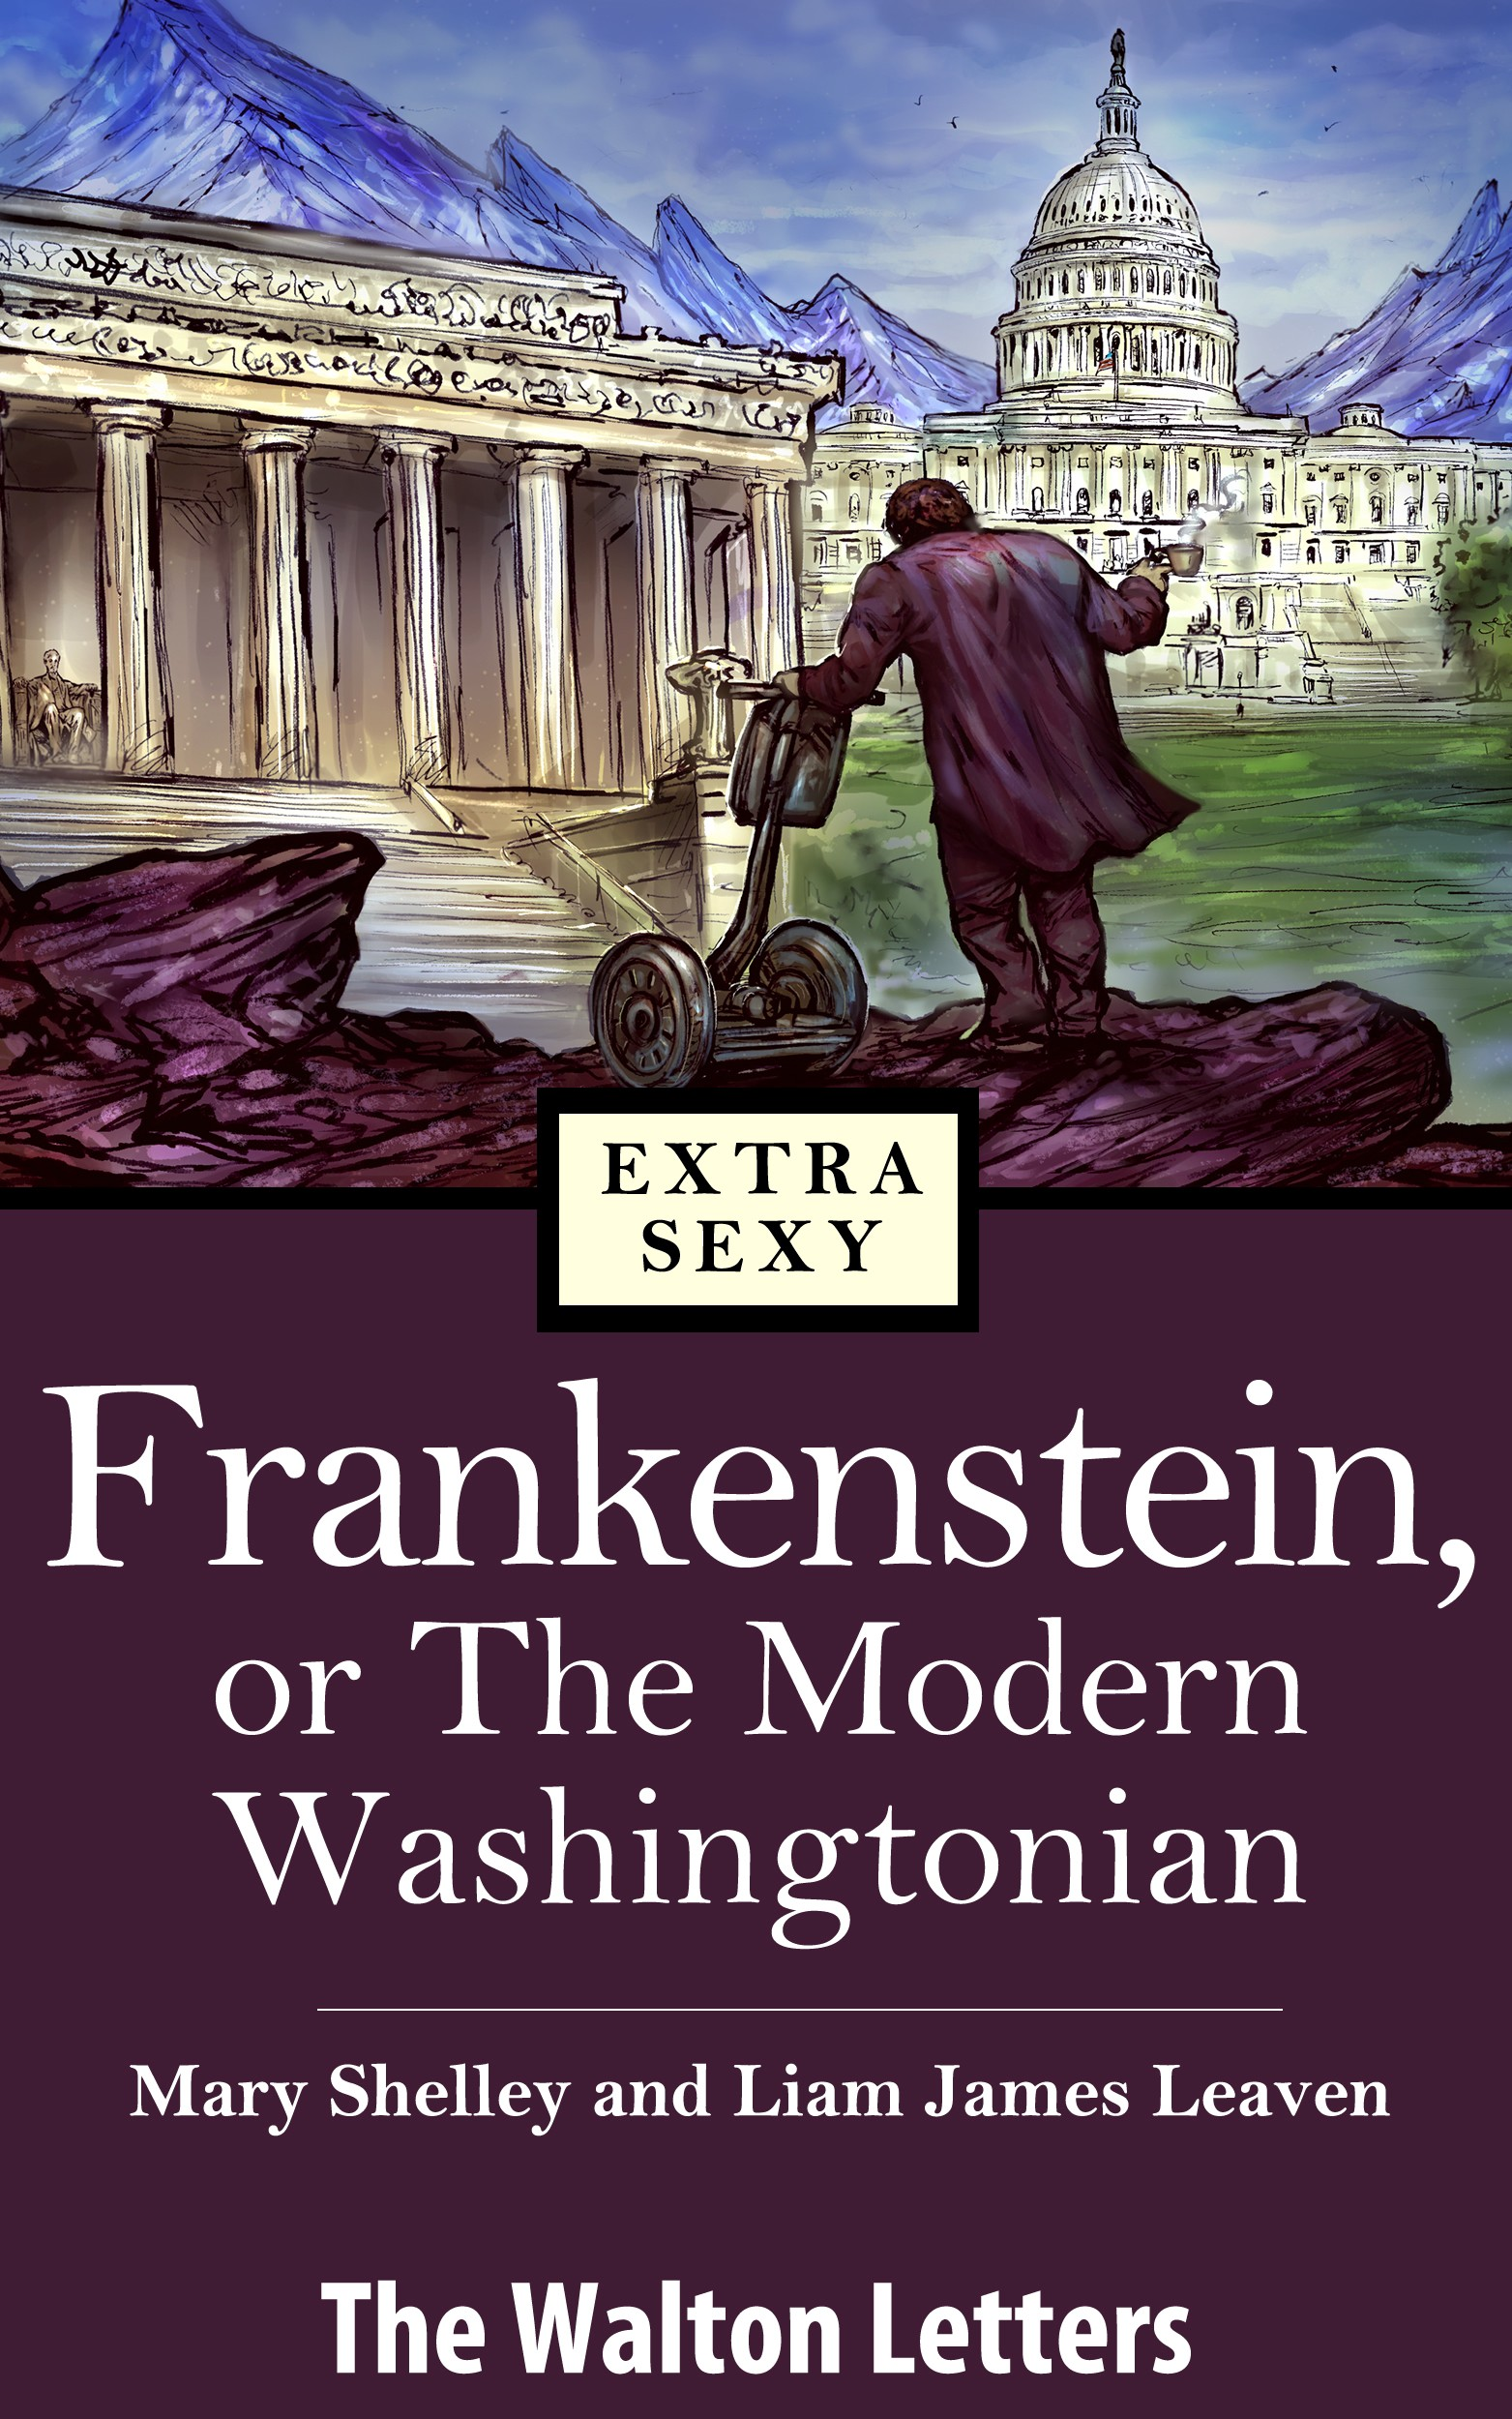 A Mash Up Re Telling Of Robert Walton S Letters That Introduce Mary Shelley S Frankenstein By Liam James Leaven Medium